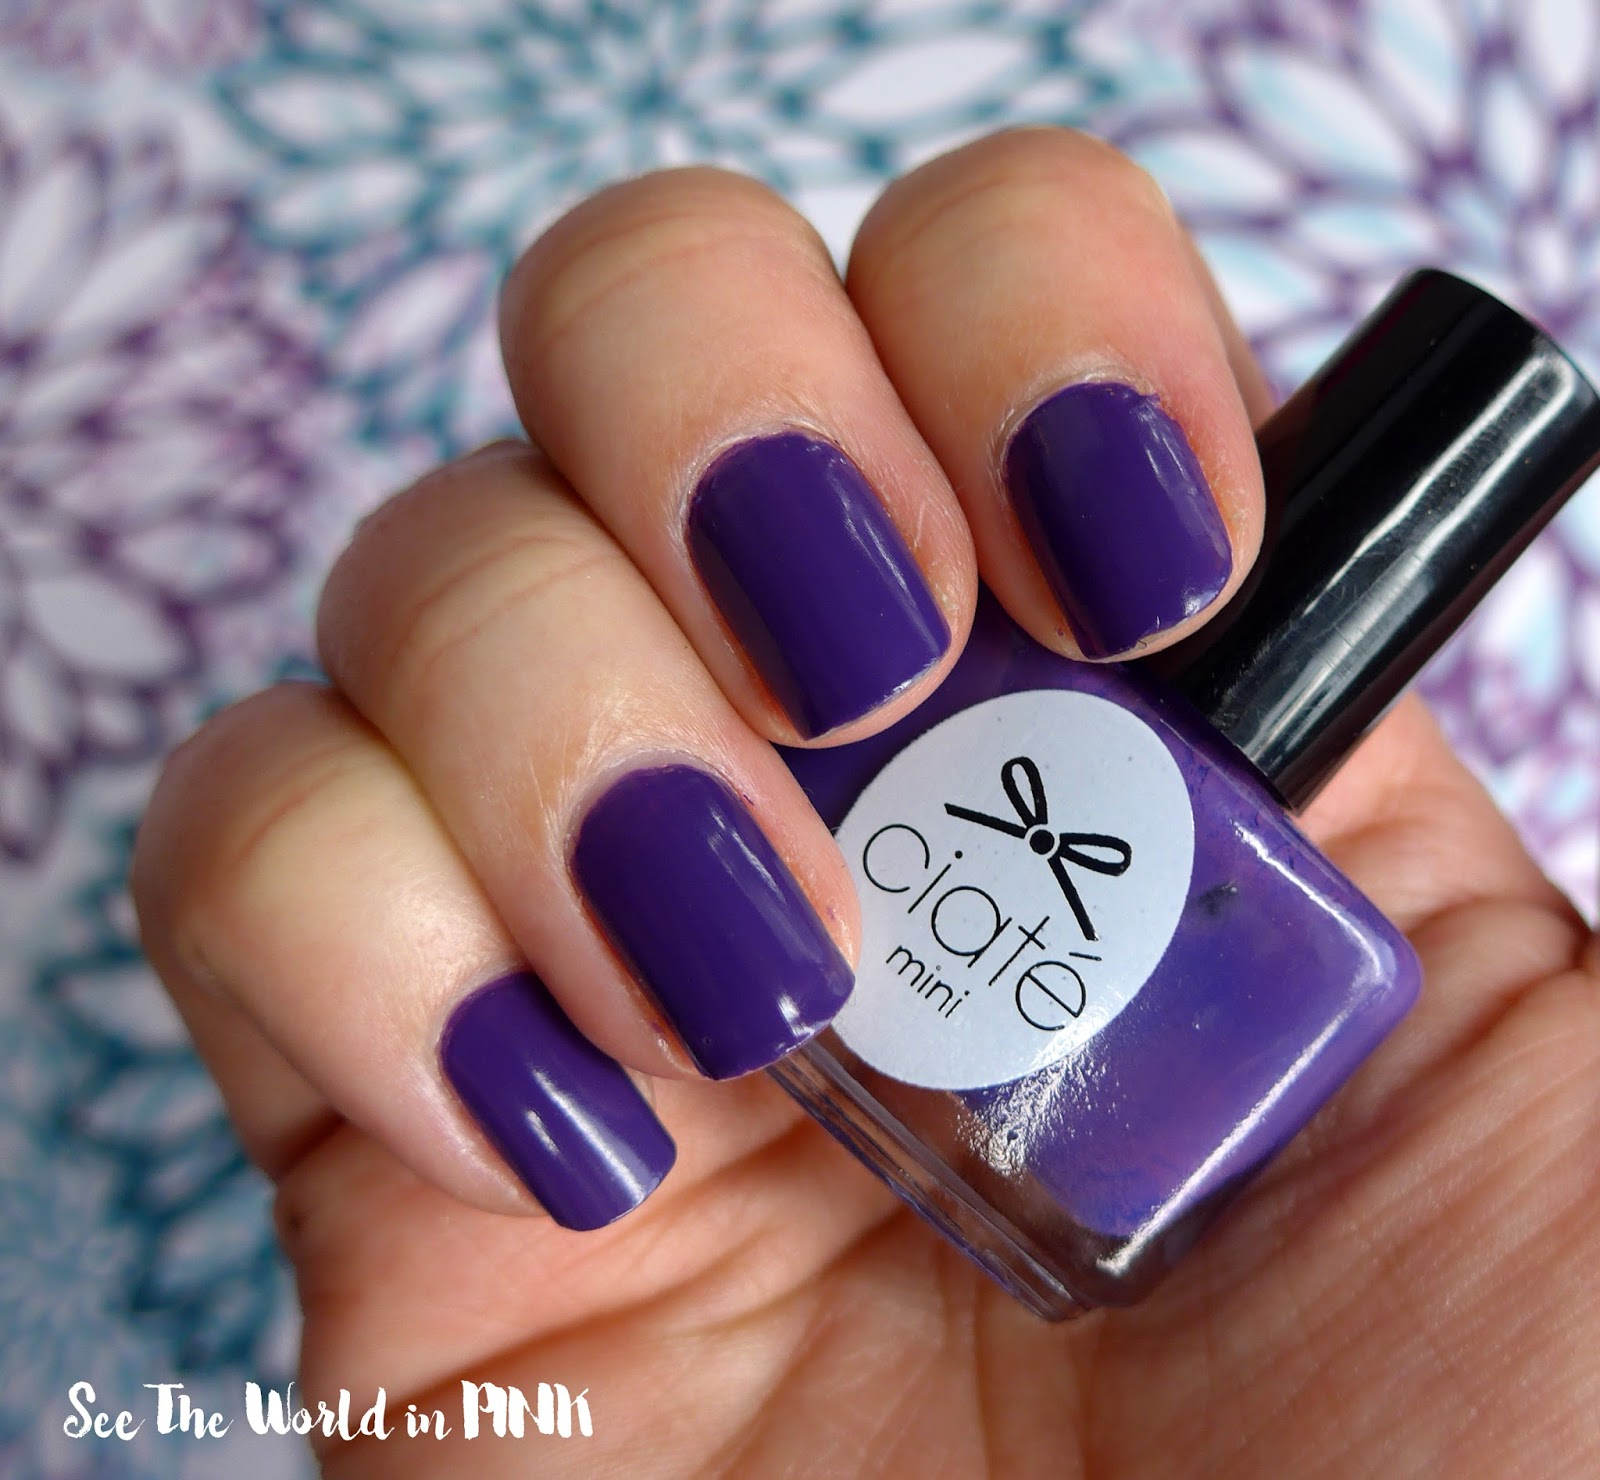 Manicure Tuesday - Colour of the Year Ultra Violet Nails!